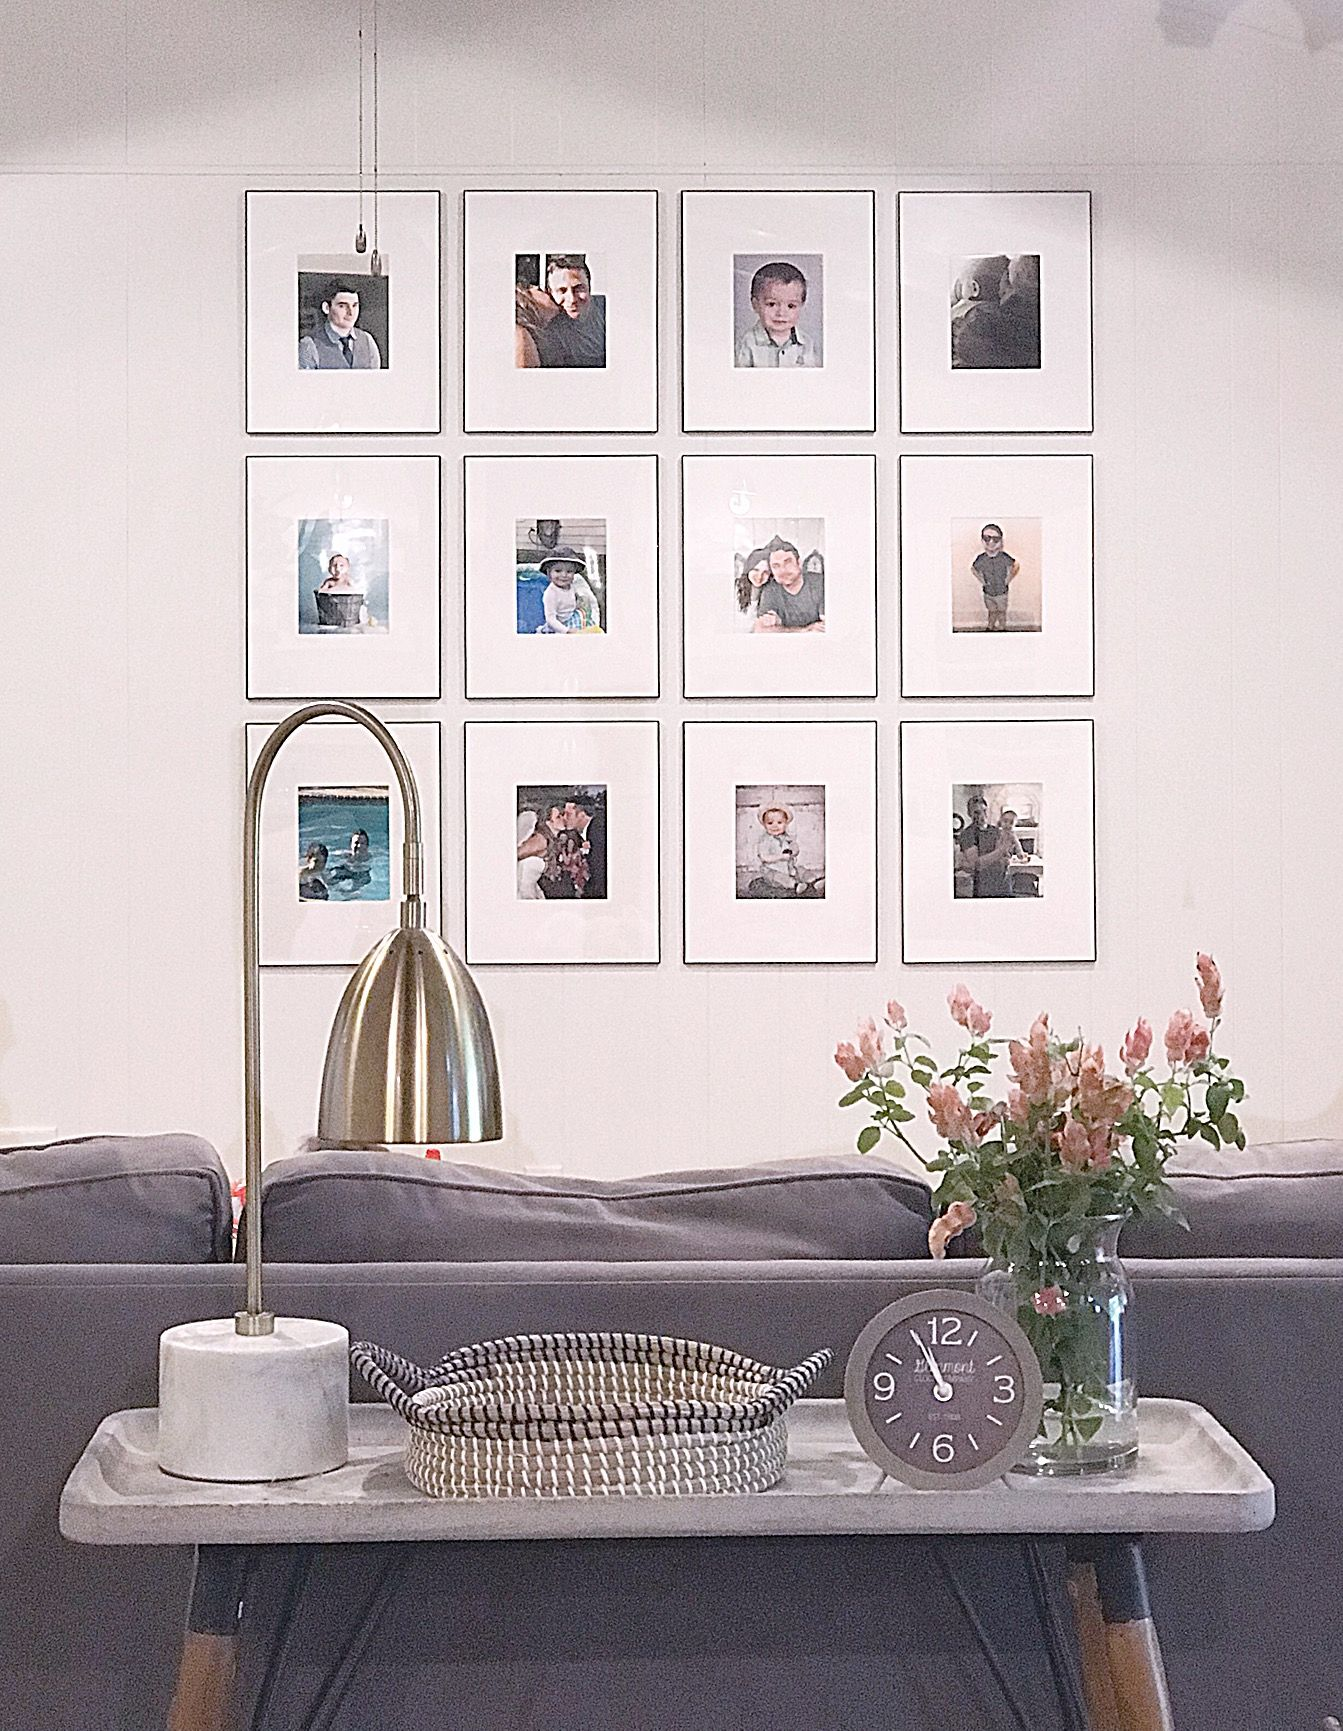 Family Photo Wall Living Room Family Photo Wall Ideas Framed Family Photos With Mattes Living Room Family Photo Idea Living Room Decor Large Wall Decor Wall Living room family picture ideas